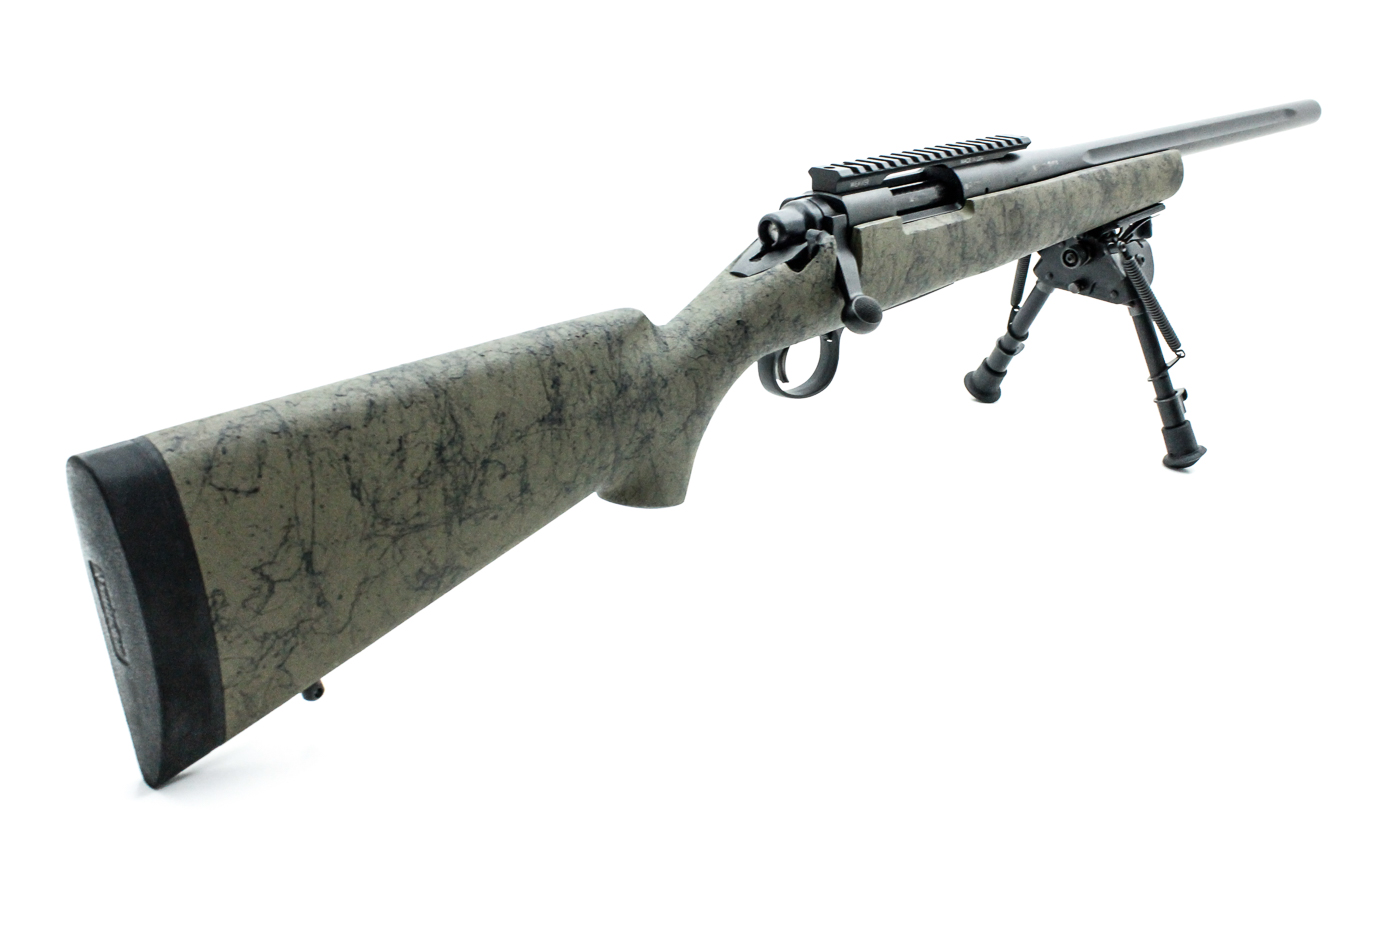 Remington 700 Compact Tactical, .308 Win - Image 3